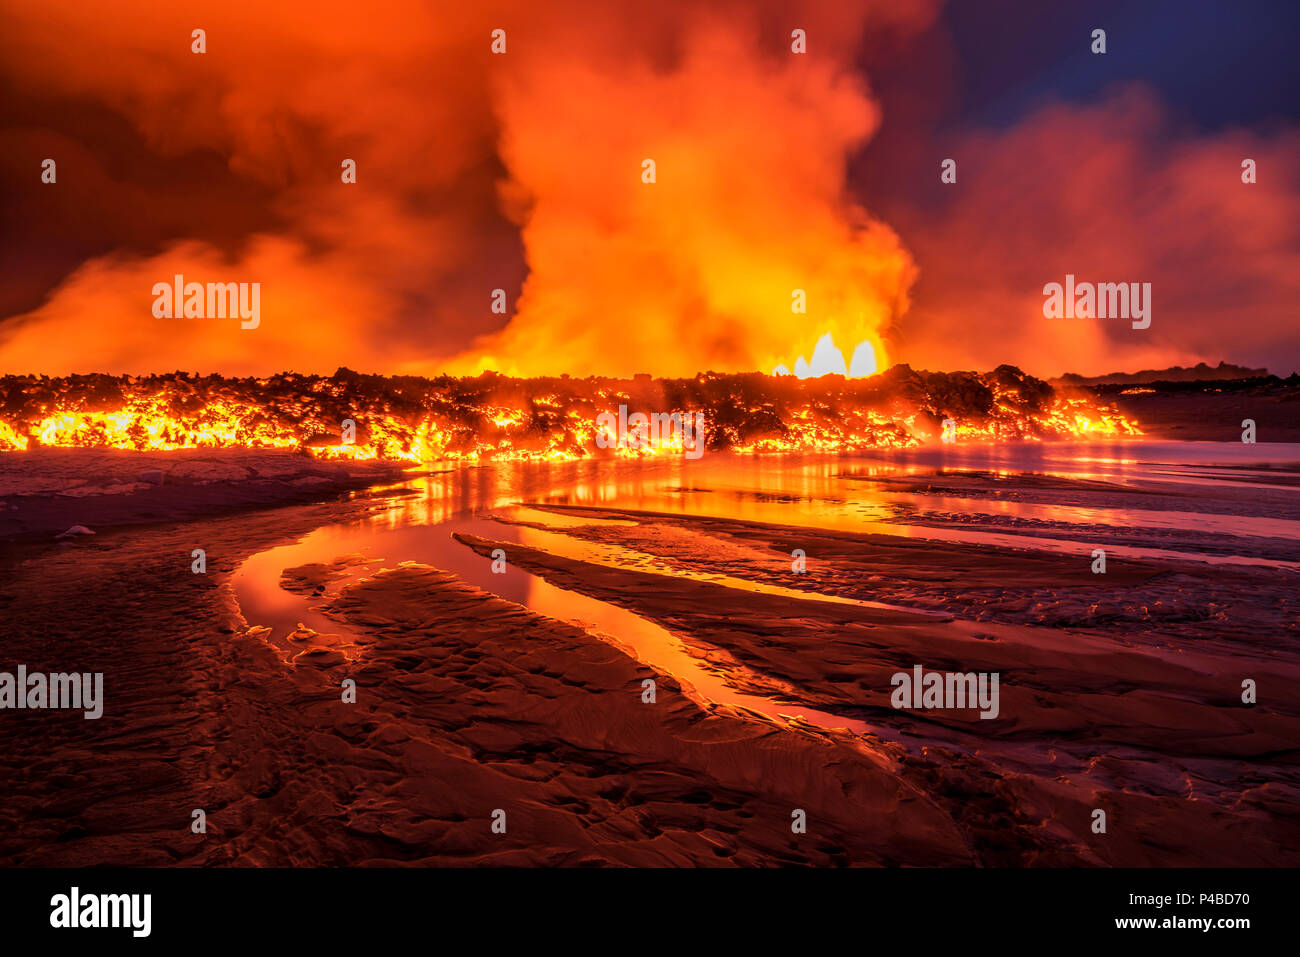 Glowing lava from the eruption at the Holuhraun Fissure, near the Bardarbunga Volcano, Iceland. August 29, 2014, a fissure eruption started in Holuhraun at the northern end of a magma intrusion, which had moved progressively north, from the Bardarbunga volcano. Picture date- Sept 2, 2014 Stock Photo